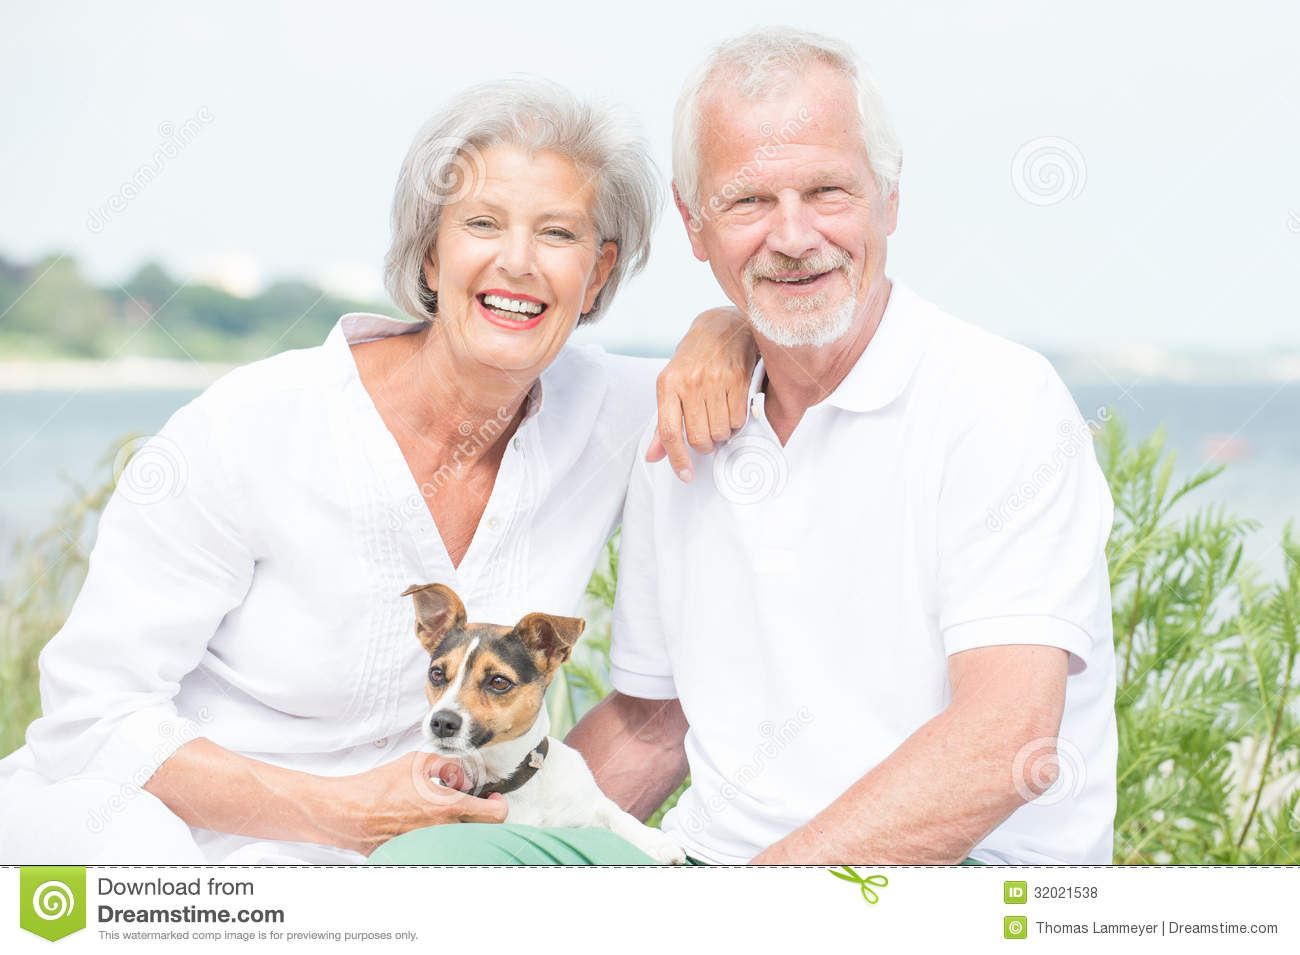 online dating seniors free Matchmakers help those over 60 handle dating's about 90 percent of the estimated 3,000 matchmakers in the united states will work with seniors.